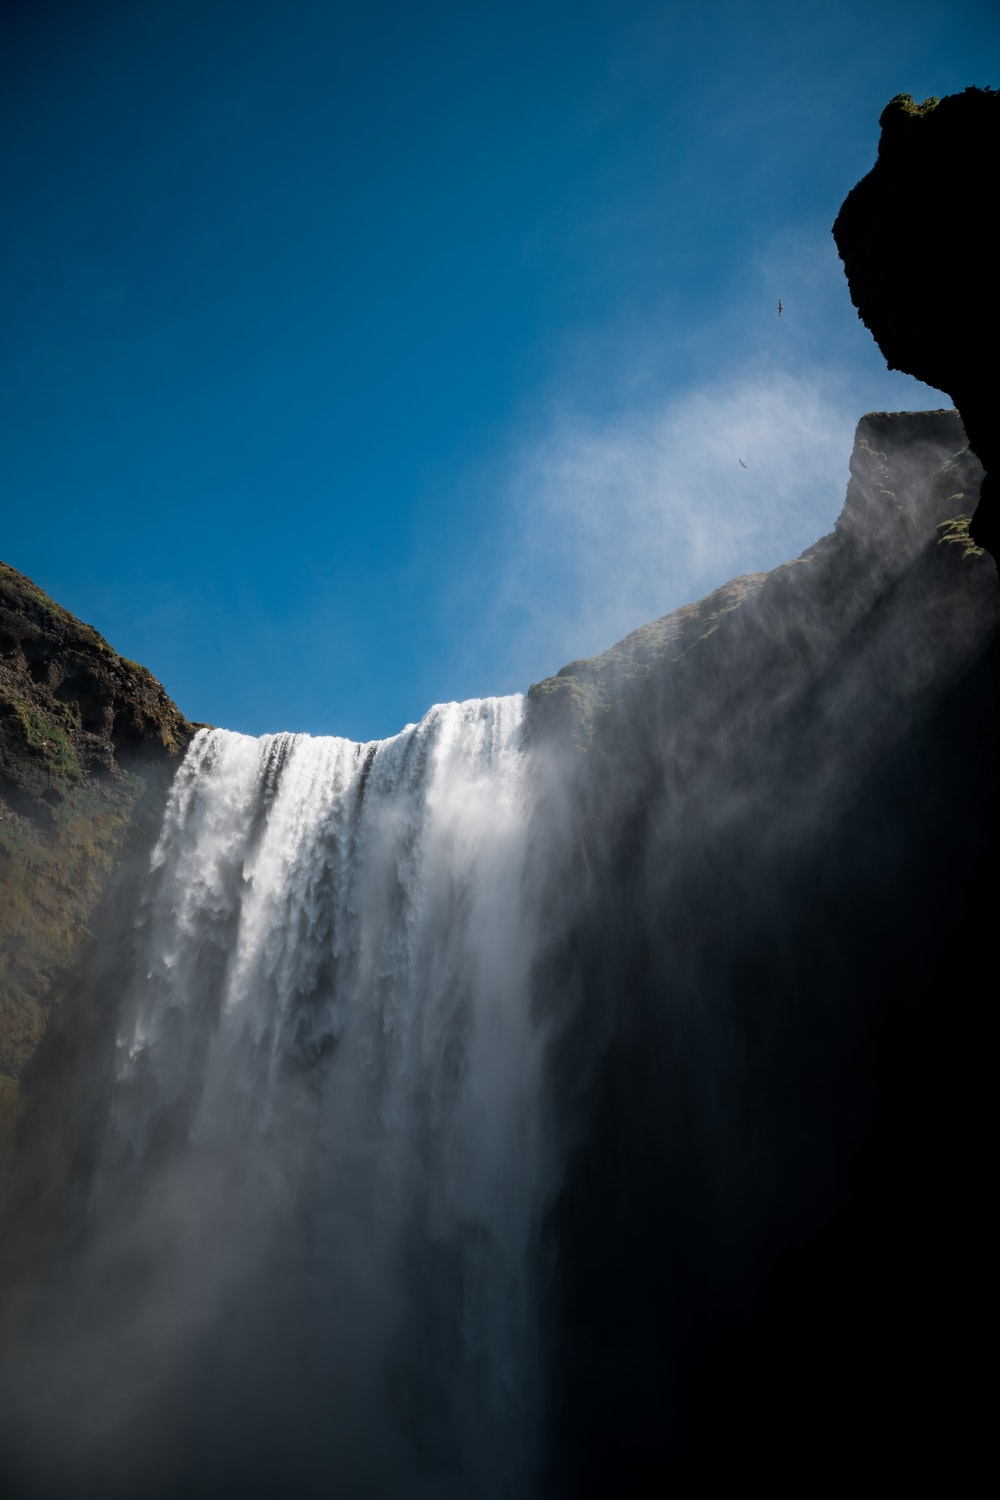 low angle view of waterfall at daytime